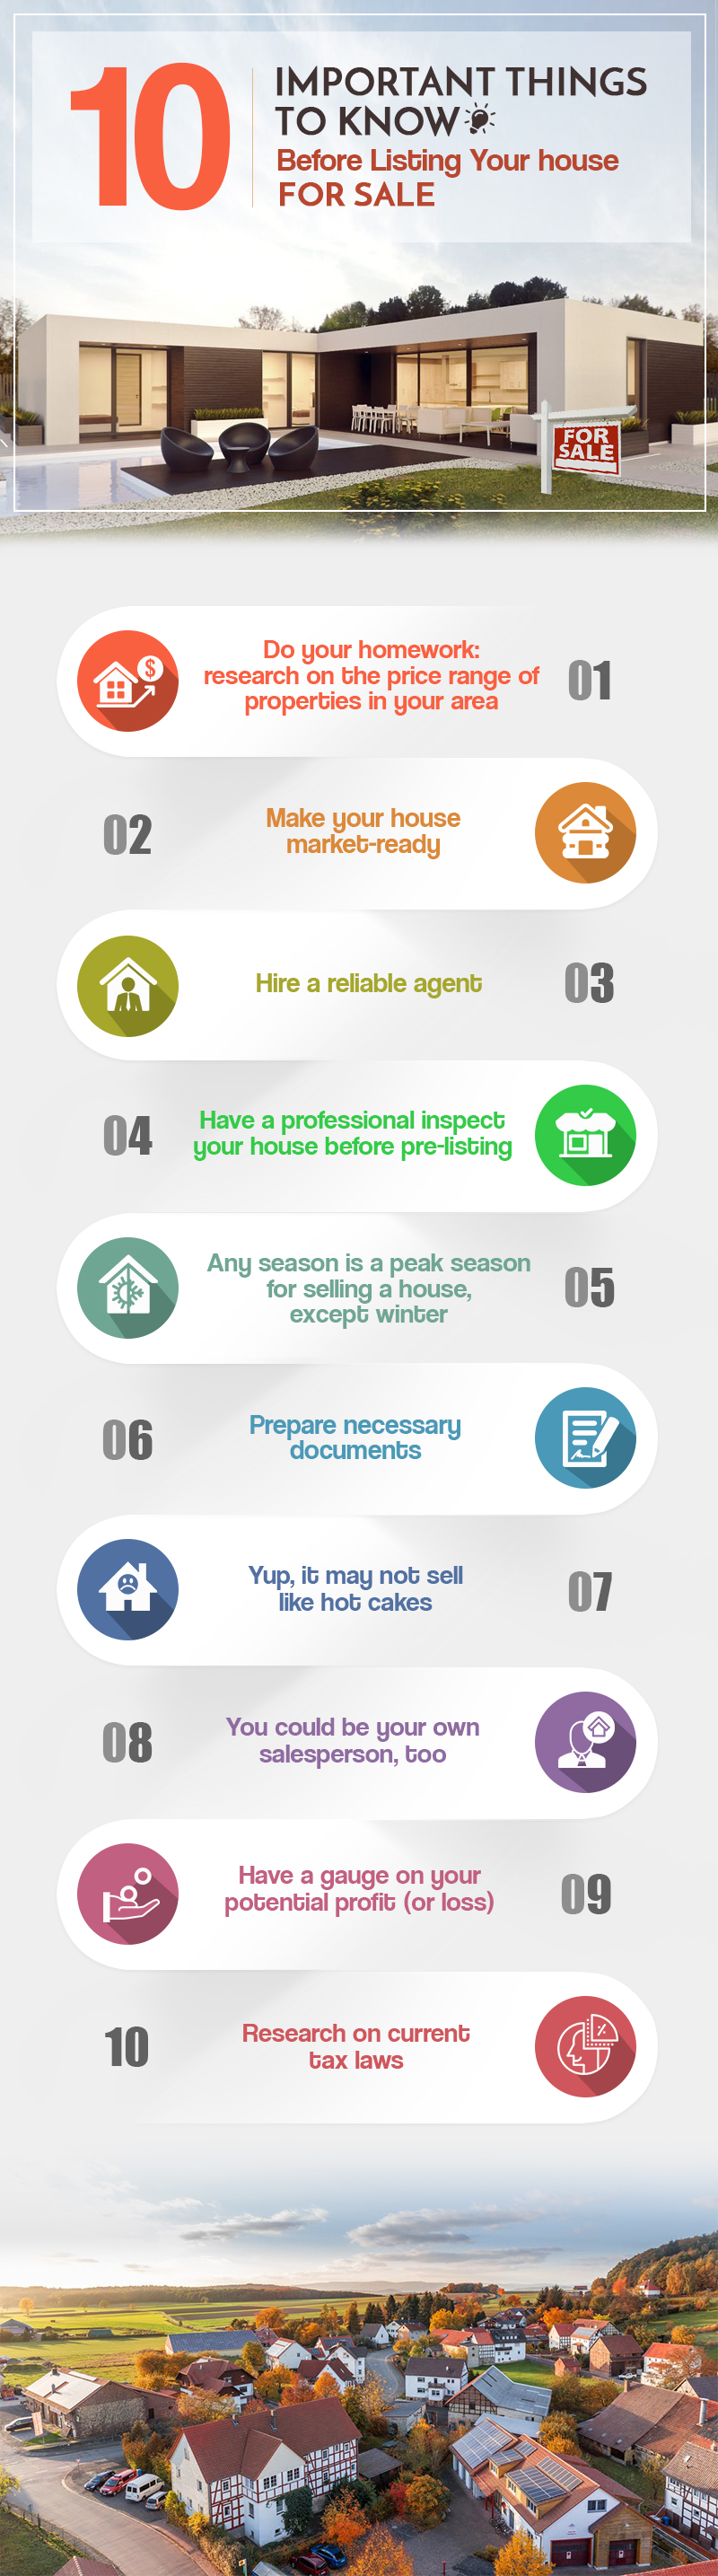 10 Important Things To Know Before Listing Your House For Sale